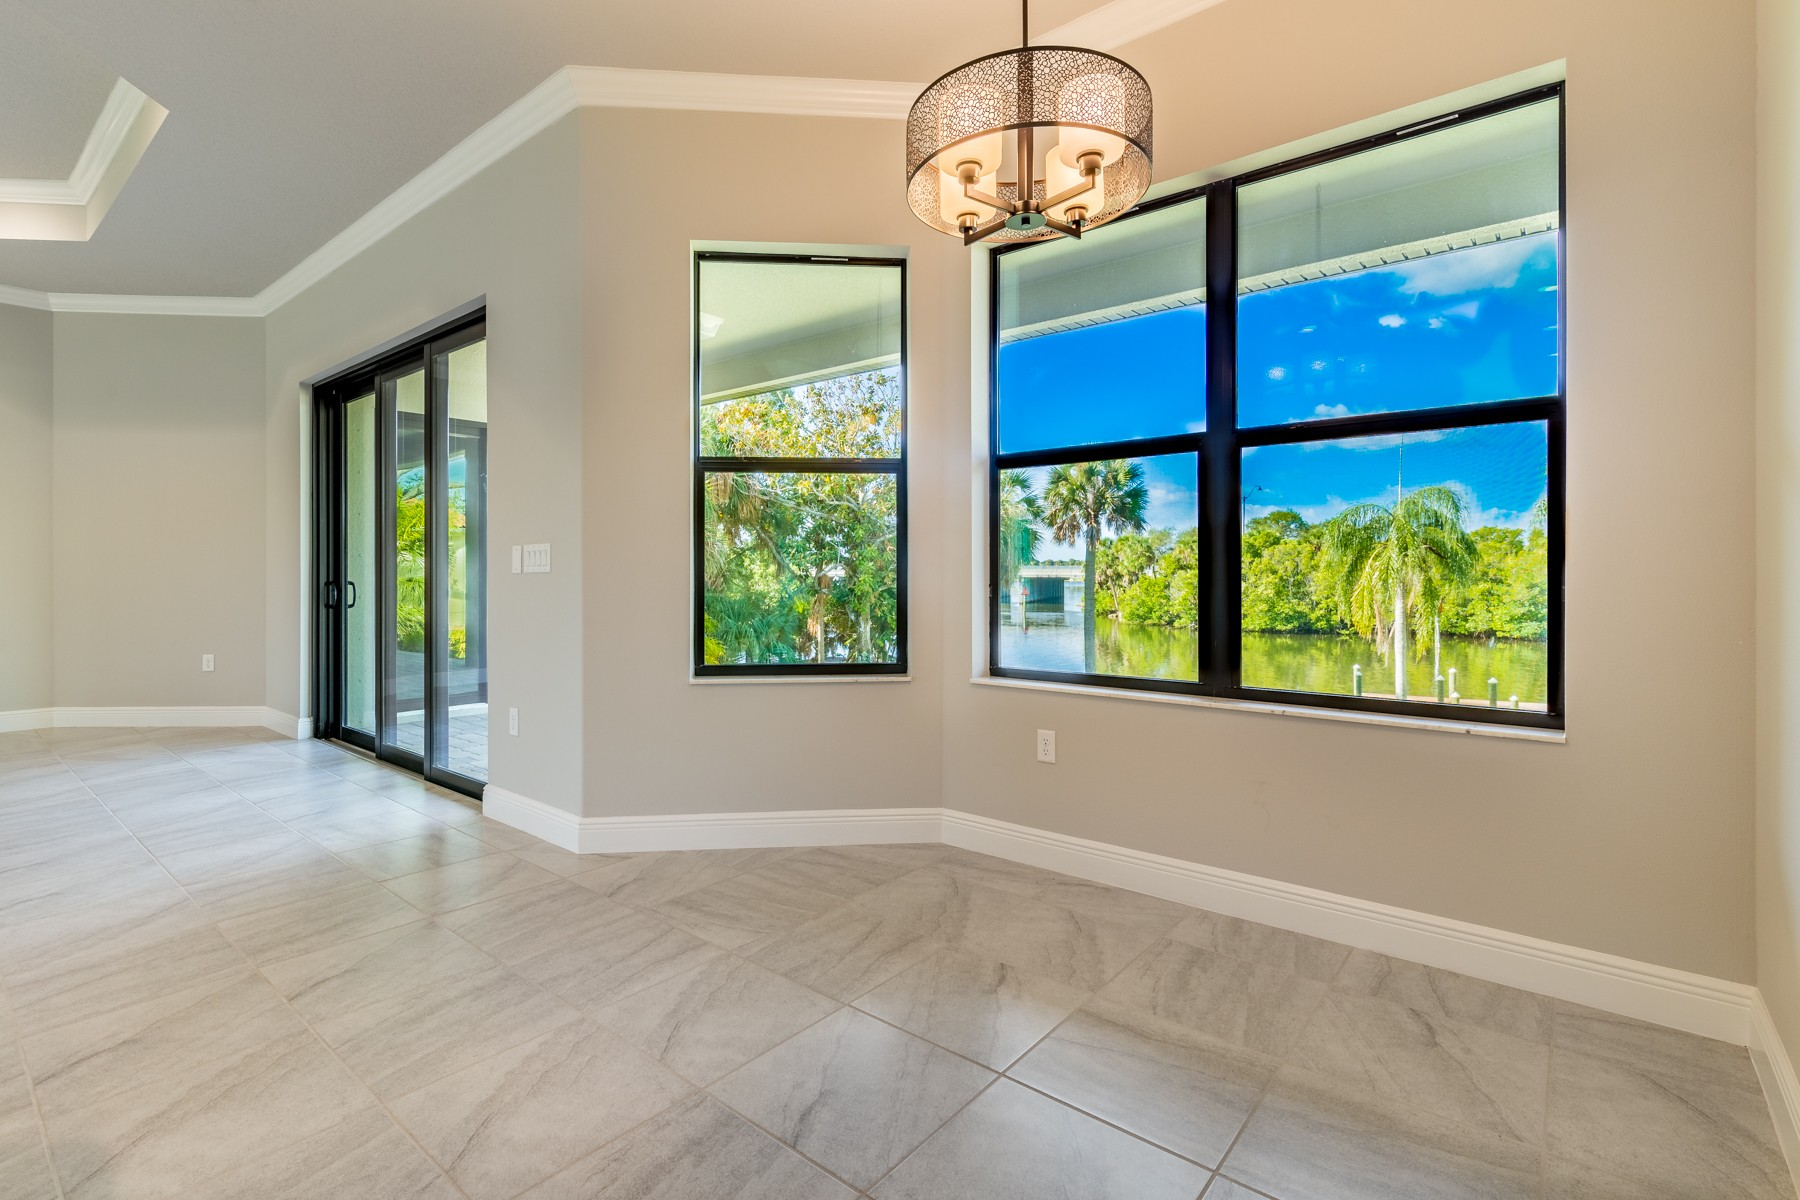 Additional photo for property listing at Brand New Waterfront Home in Palm Bay Point 1434 Herndon Circle NE Palm Bay, Florida 32905 Förenta staterna